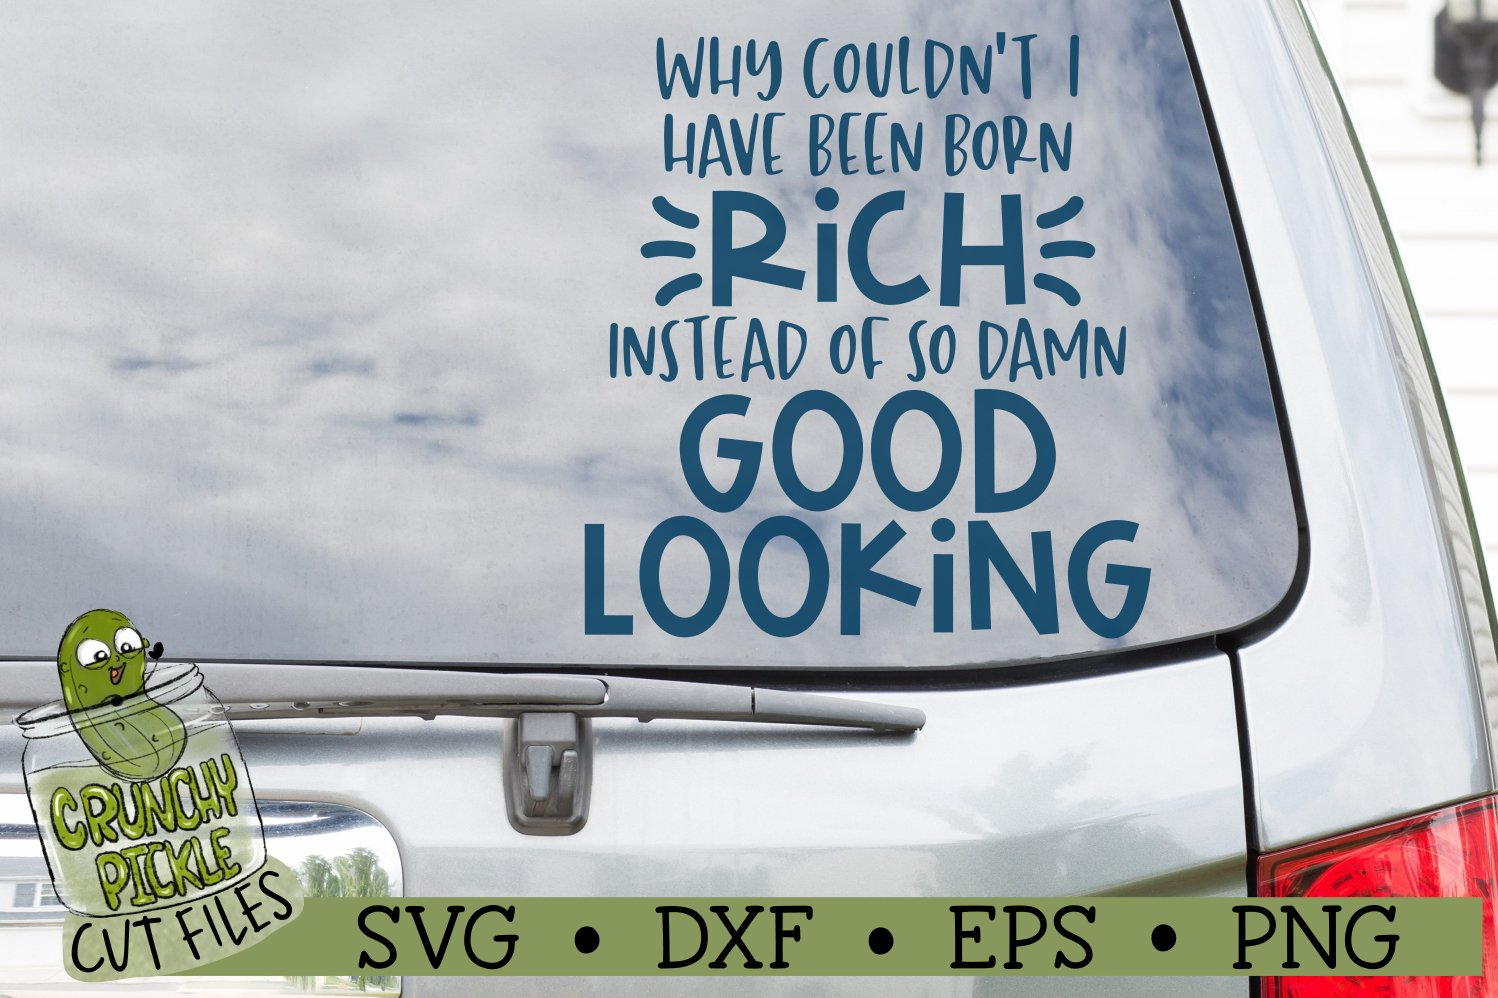 Born Rich Instead of so Damn Good Looking Funny SVG Cut File example image 4